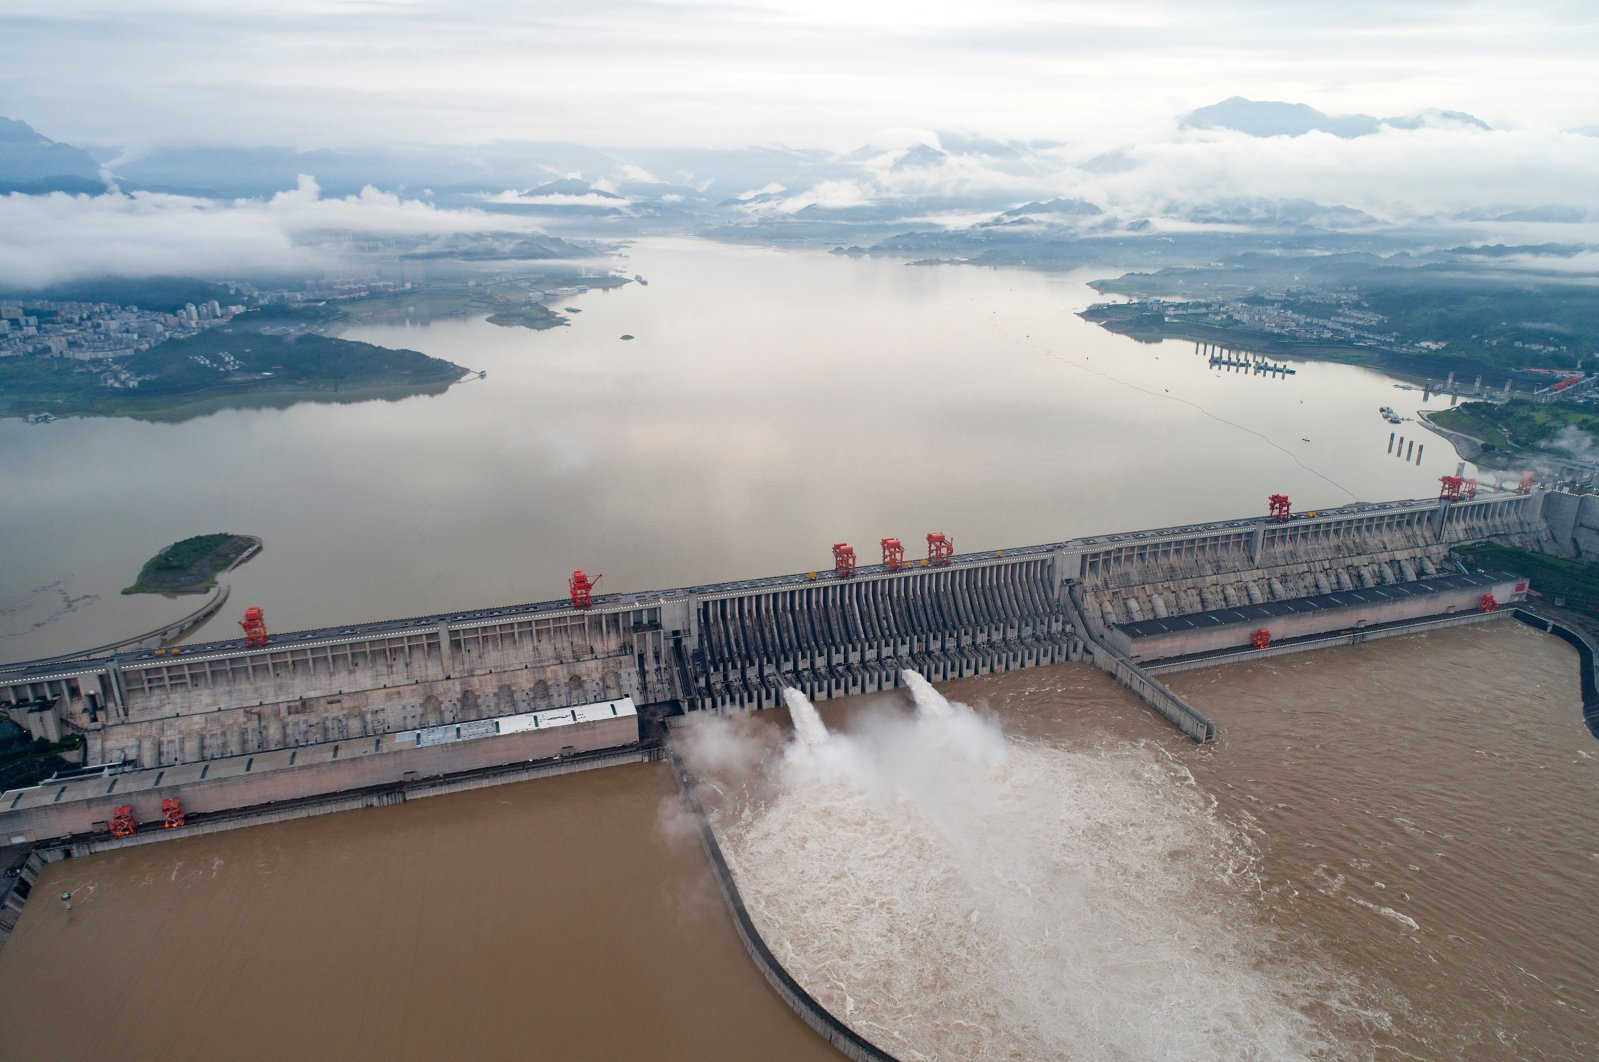 In this photo released by China's Xinhua News Agency, water flows out from sluiceways at the Three Gorges Dam on the Yangtze River near Yichang in central China's Hubei Province, Friday, July 17, 2020. (Wang Gang/Xinhua via AP)